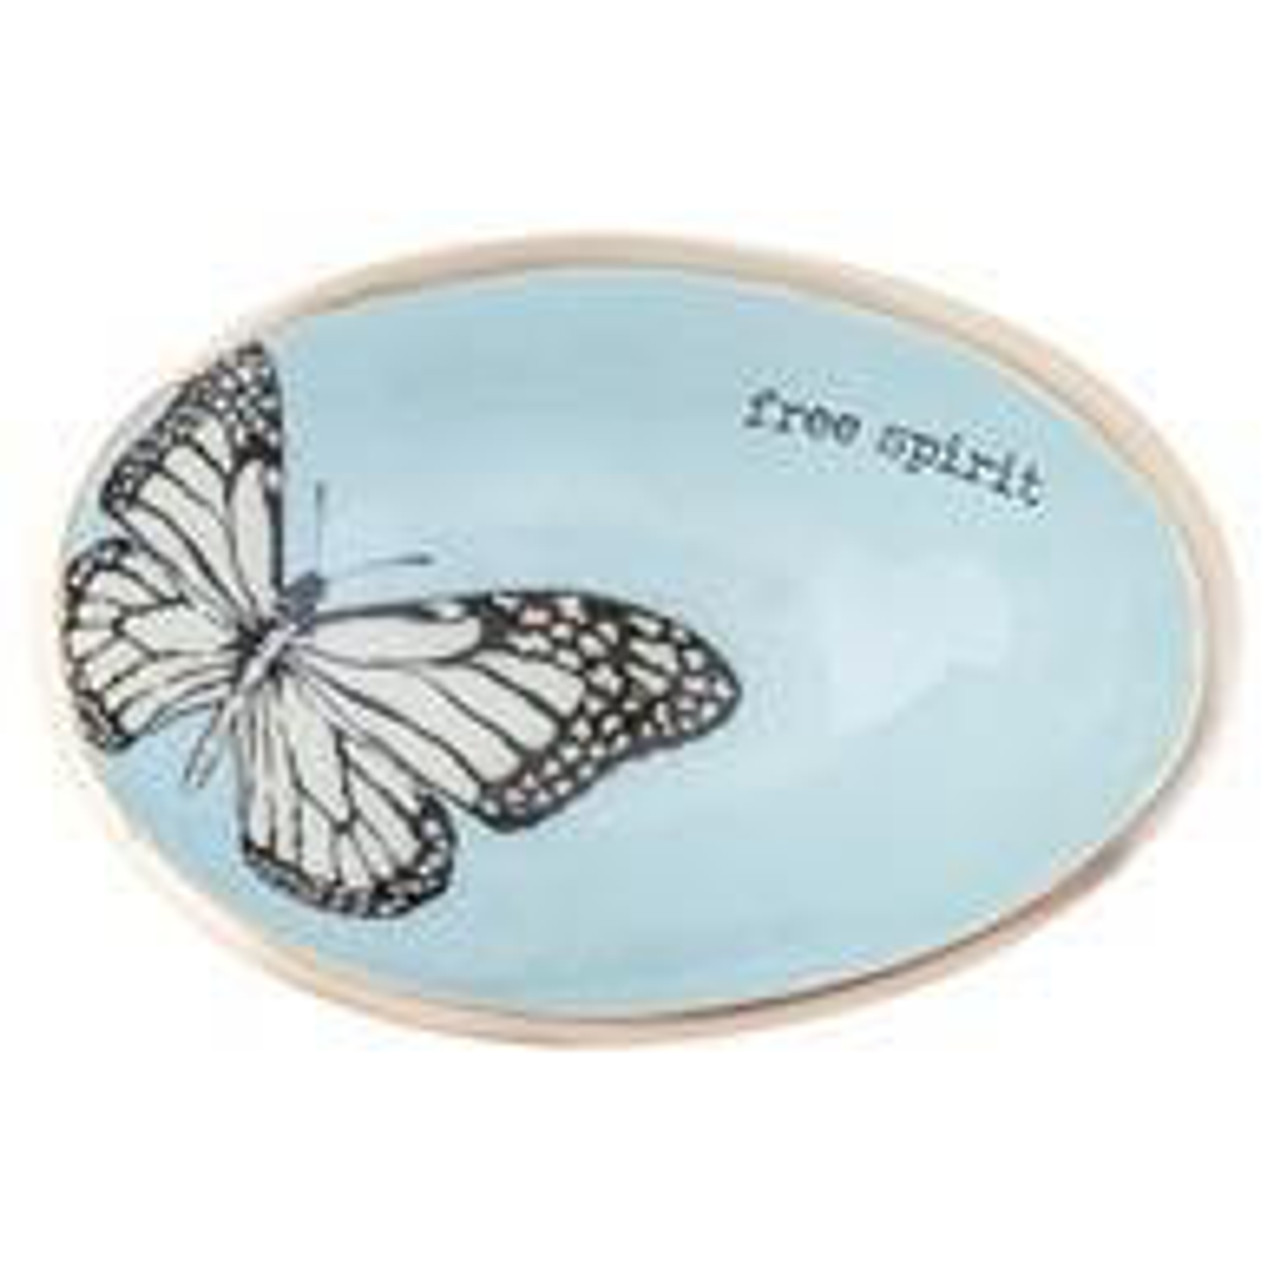 """This little organic egg-shaped bowl has a natural feel and is the perfect holder for all your smaller items and jewelry; the perfect little addition for your bedside table, bathroom, vanity, or anywhere you like. The bowl is light blue on the inside with a grey/white butterfly and """"free spirit"""" sentiment; soft gold on edge and outside. Approx 5.25"""" x 3.5"""" x 1.75"""""""